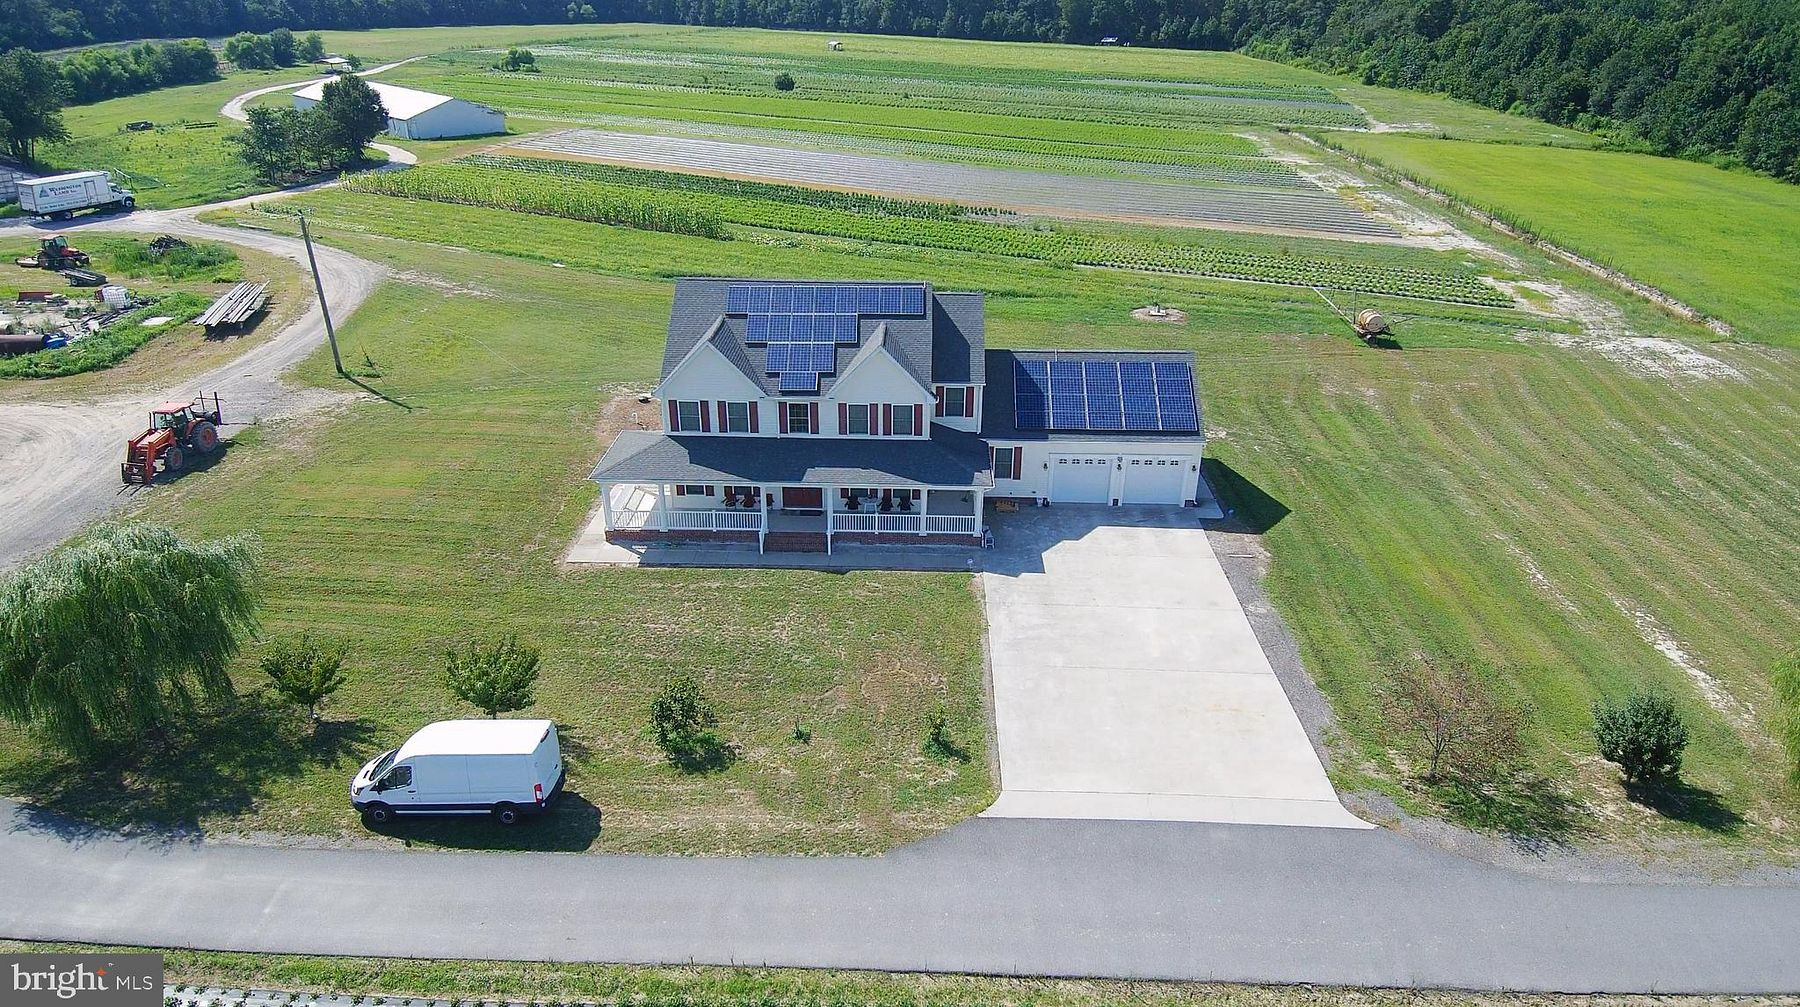 51 Acres of Improved Mixed-Use Land for Sale in Seaford, Delaware